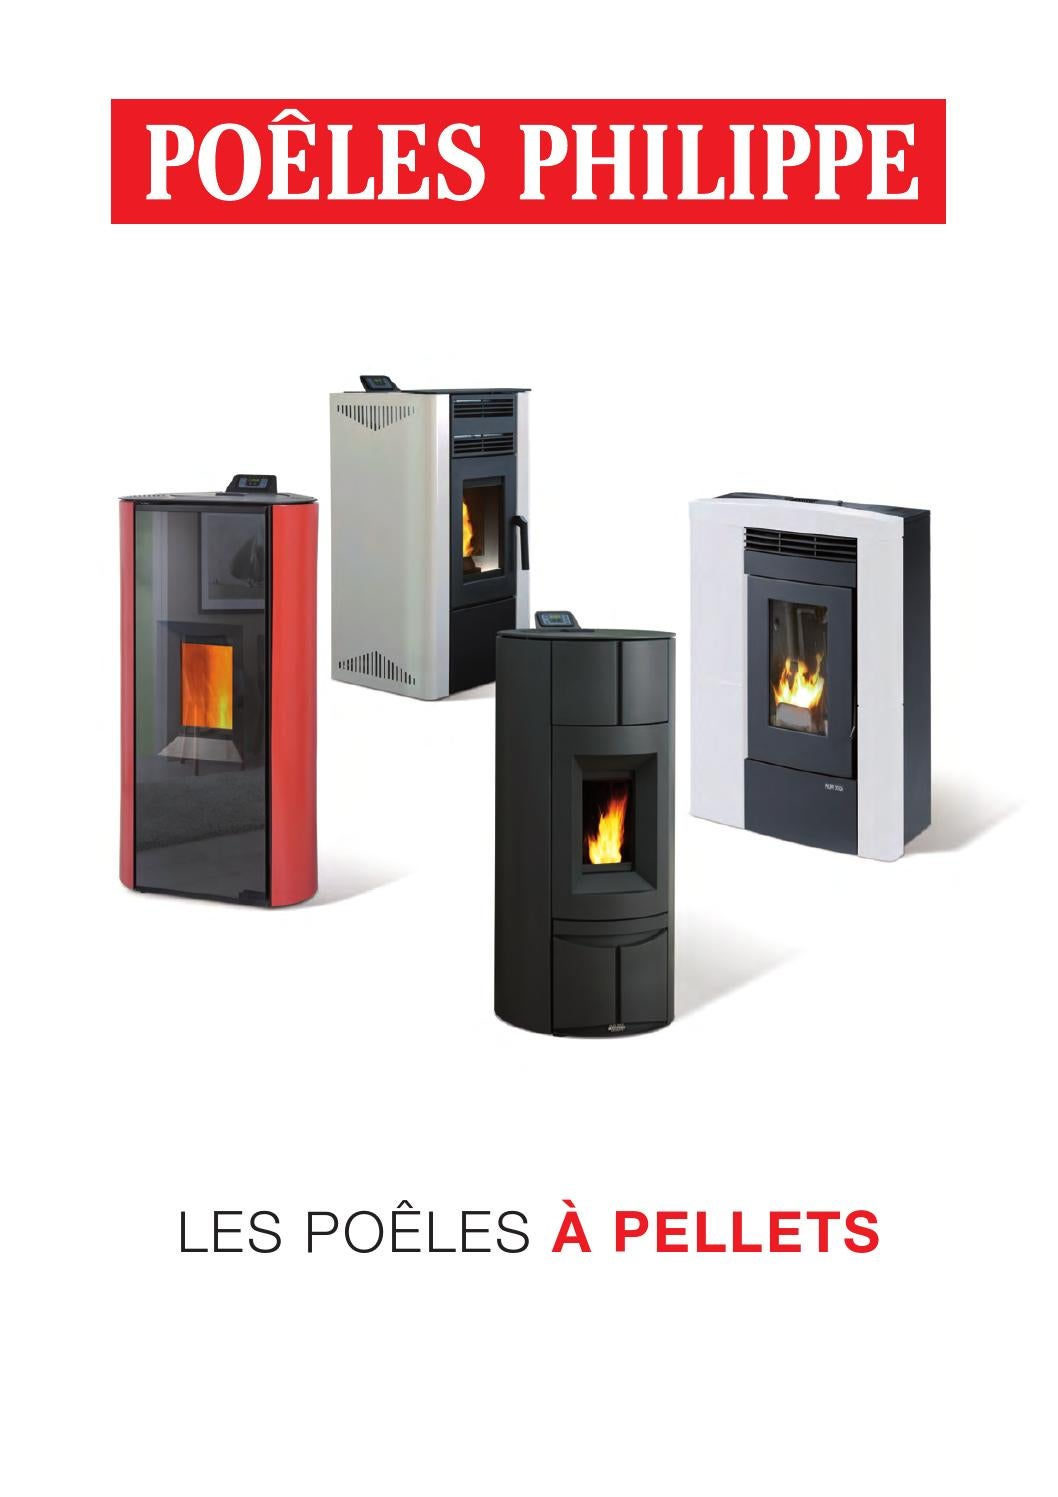 Cheminees Philippe Rivedoux 9kw Philippe Pellet 2015 By Idea Studio Caminetti Issuu